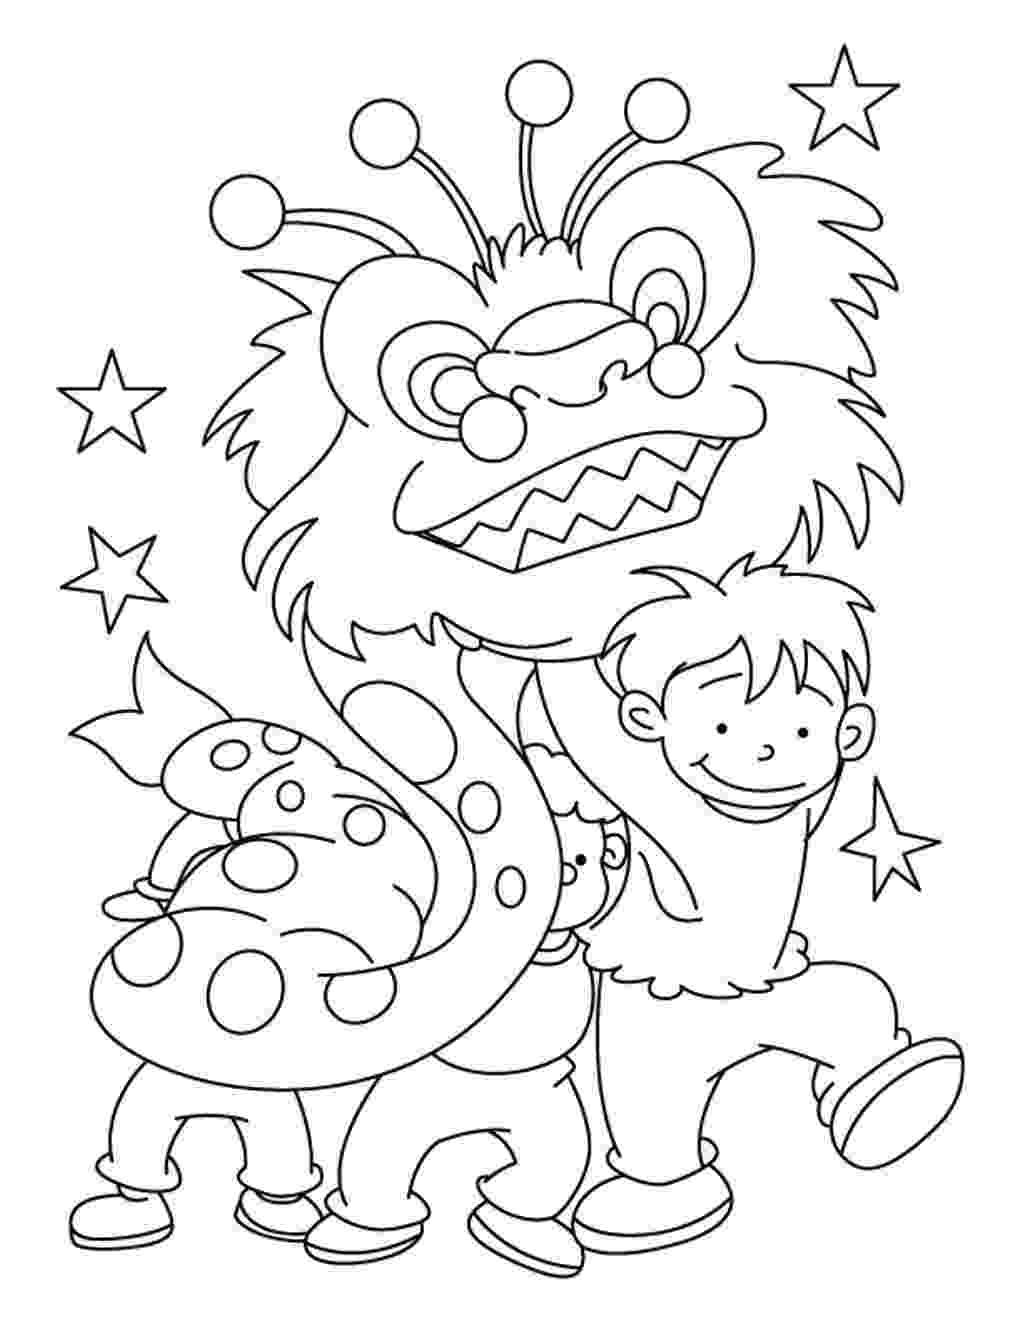 chinese new year coloring pages celebrate chinese new year with 6 cool coloring pages chinese new coloring pages year